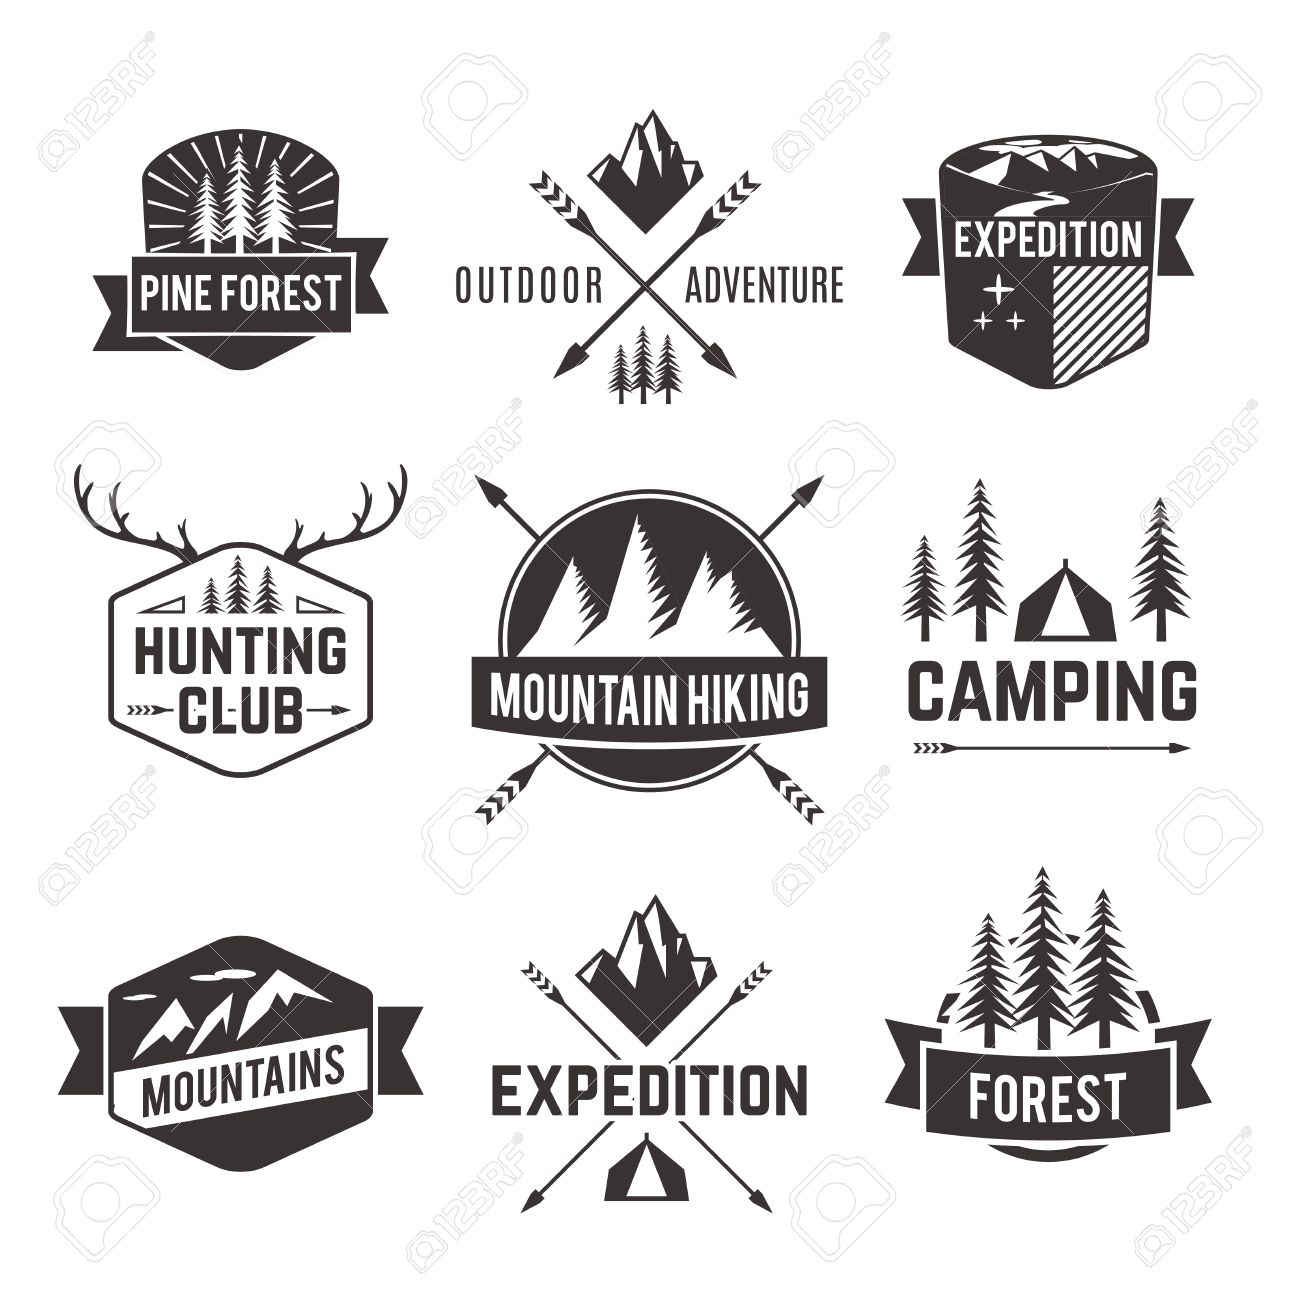 Mountain Hiking Outdoor Adventure Travel Agencies Tourism Graphic Symbols Emblems Labels Collection Black Abstract Isolated Vector